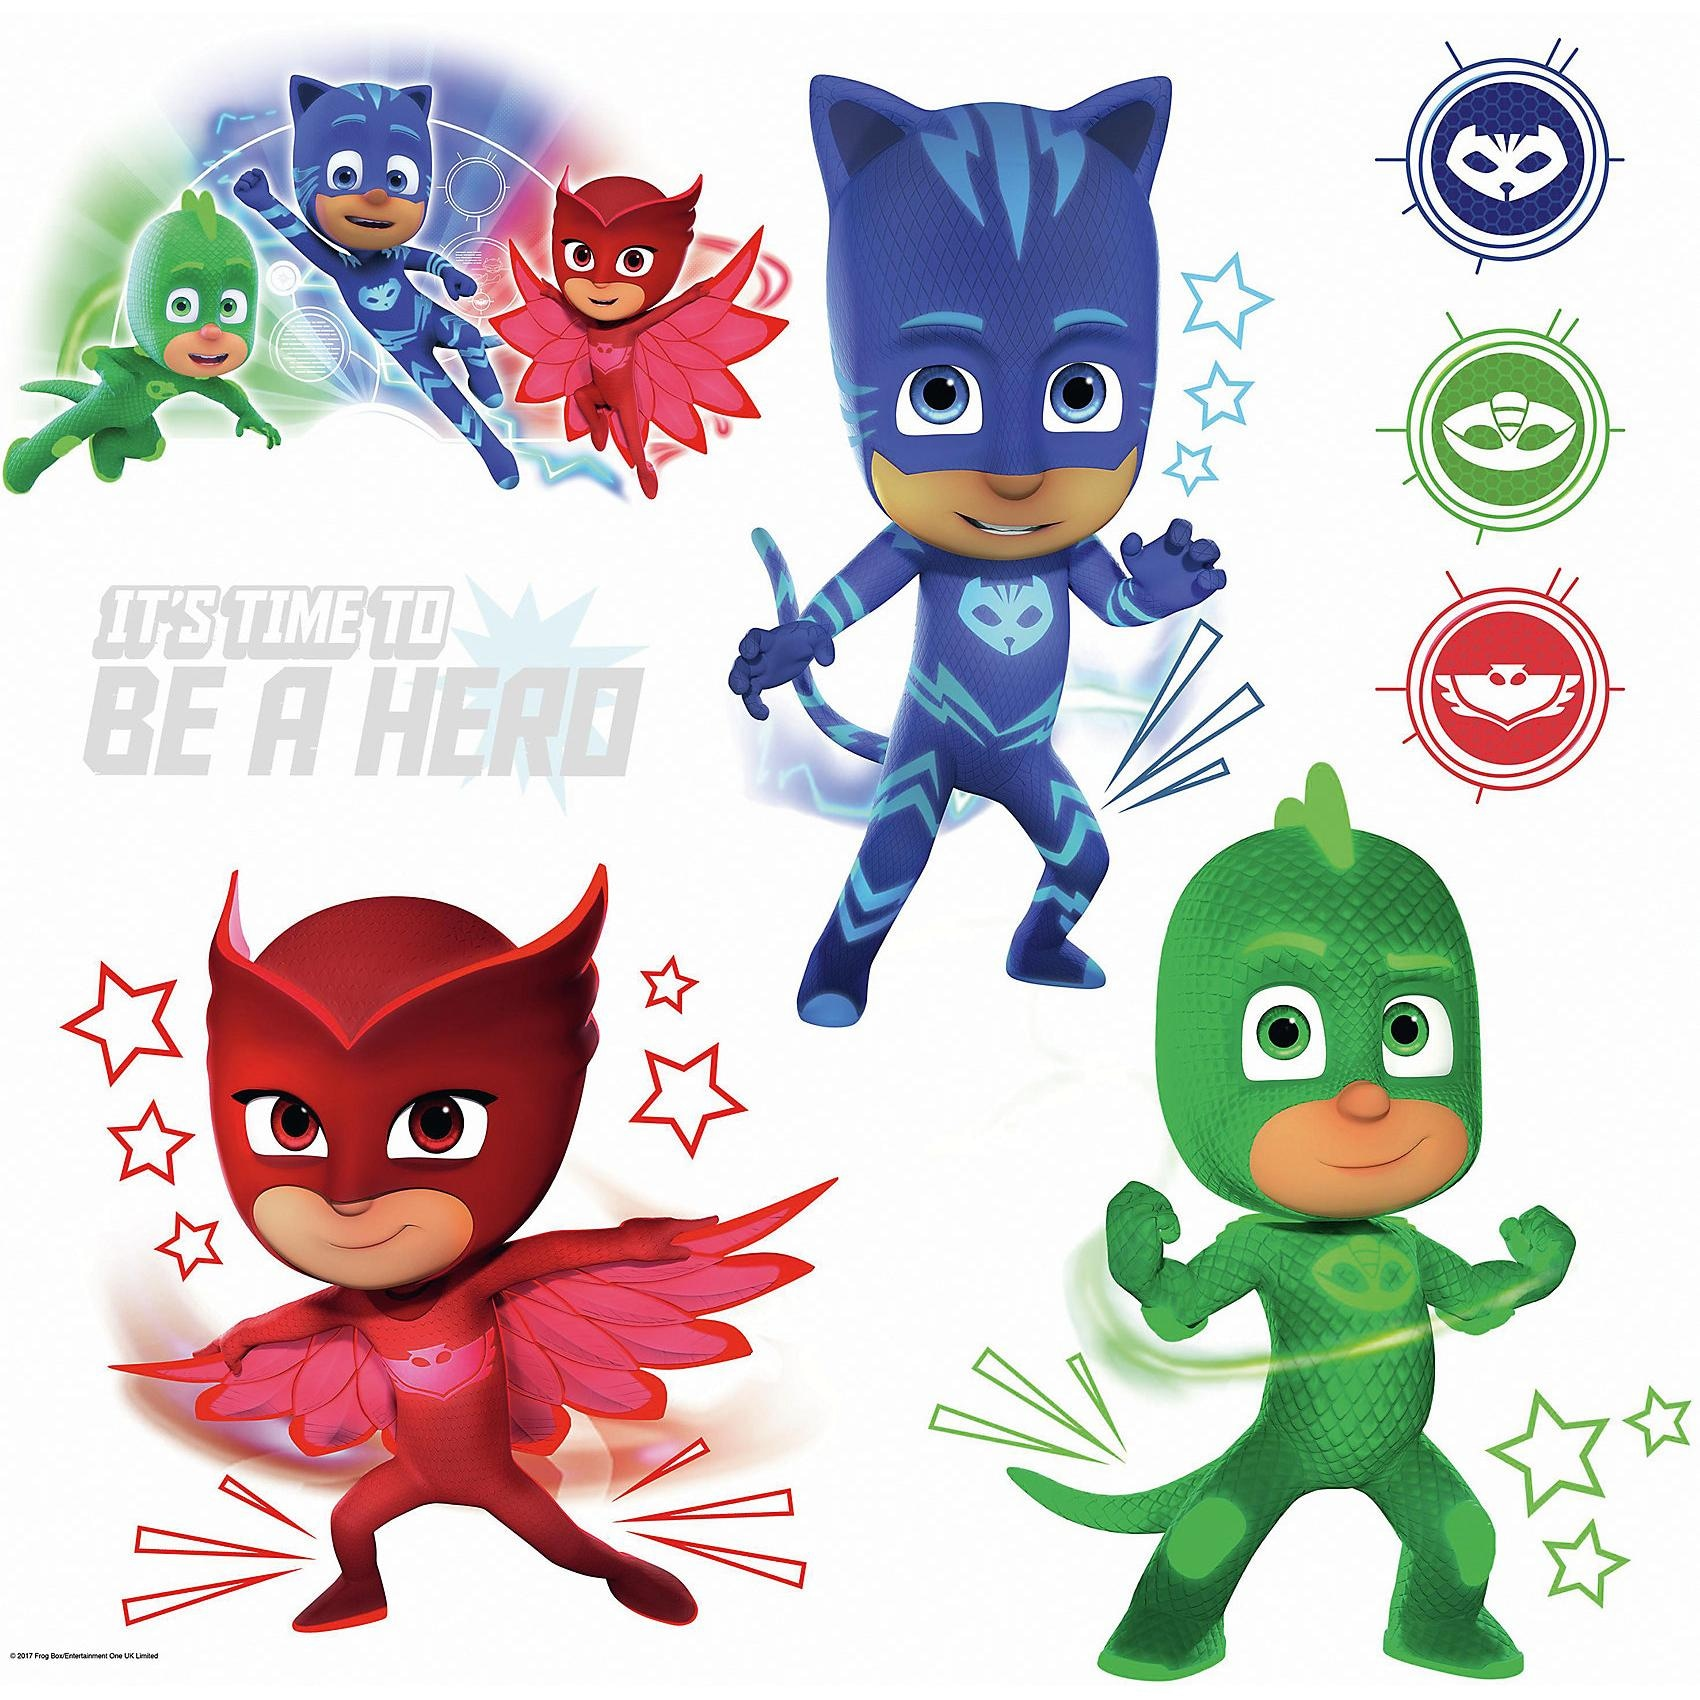 RoomMates Wandsticker PJ Masks with Glow 8-tlg.